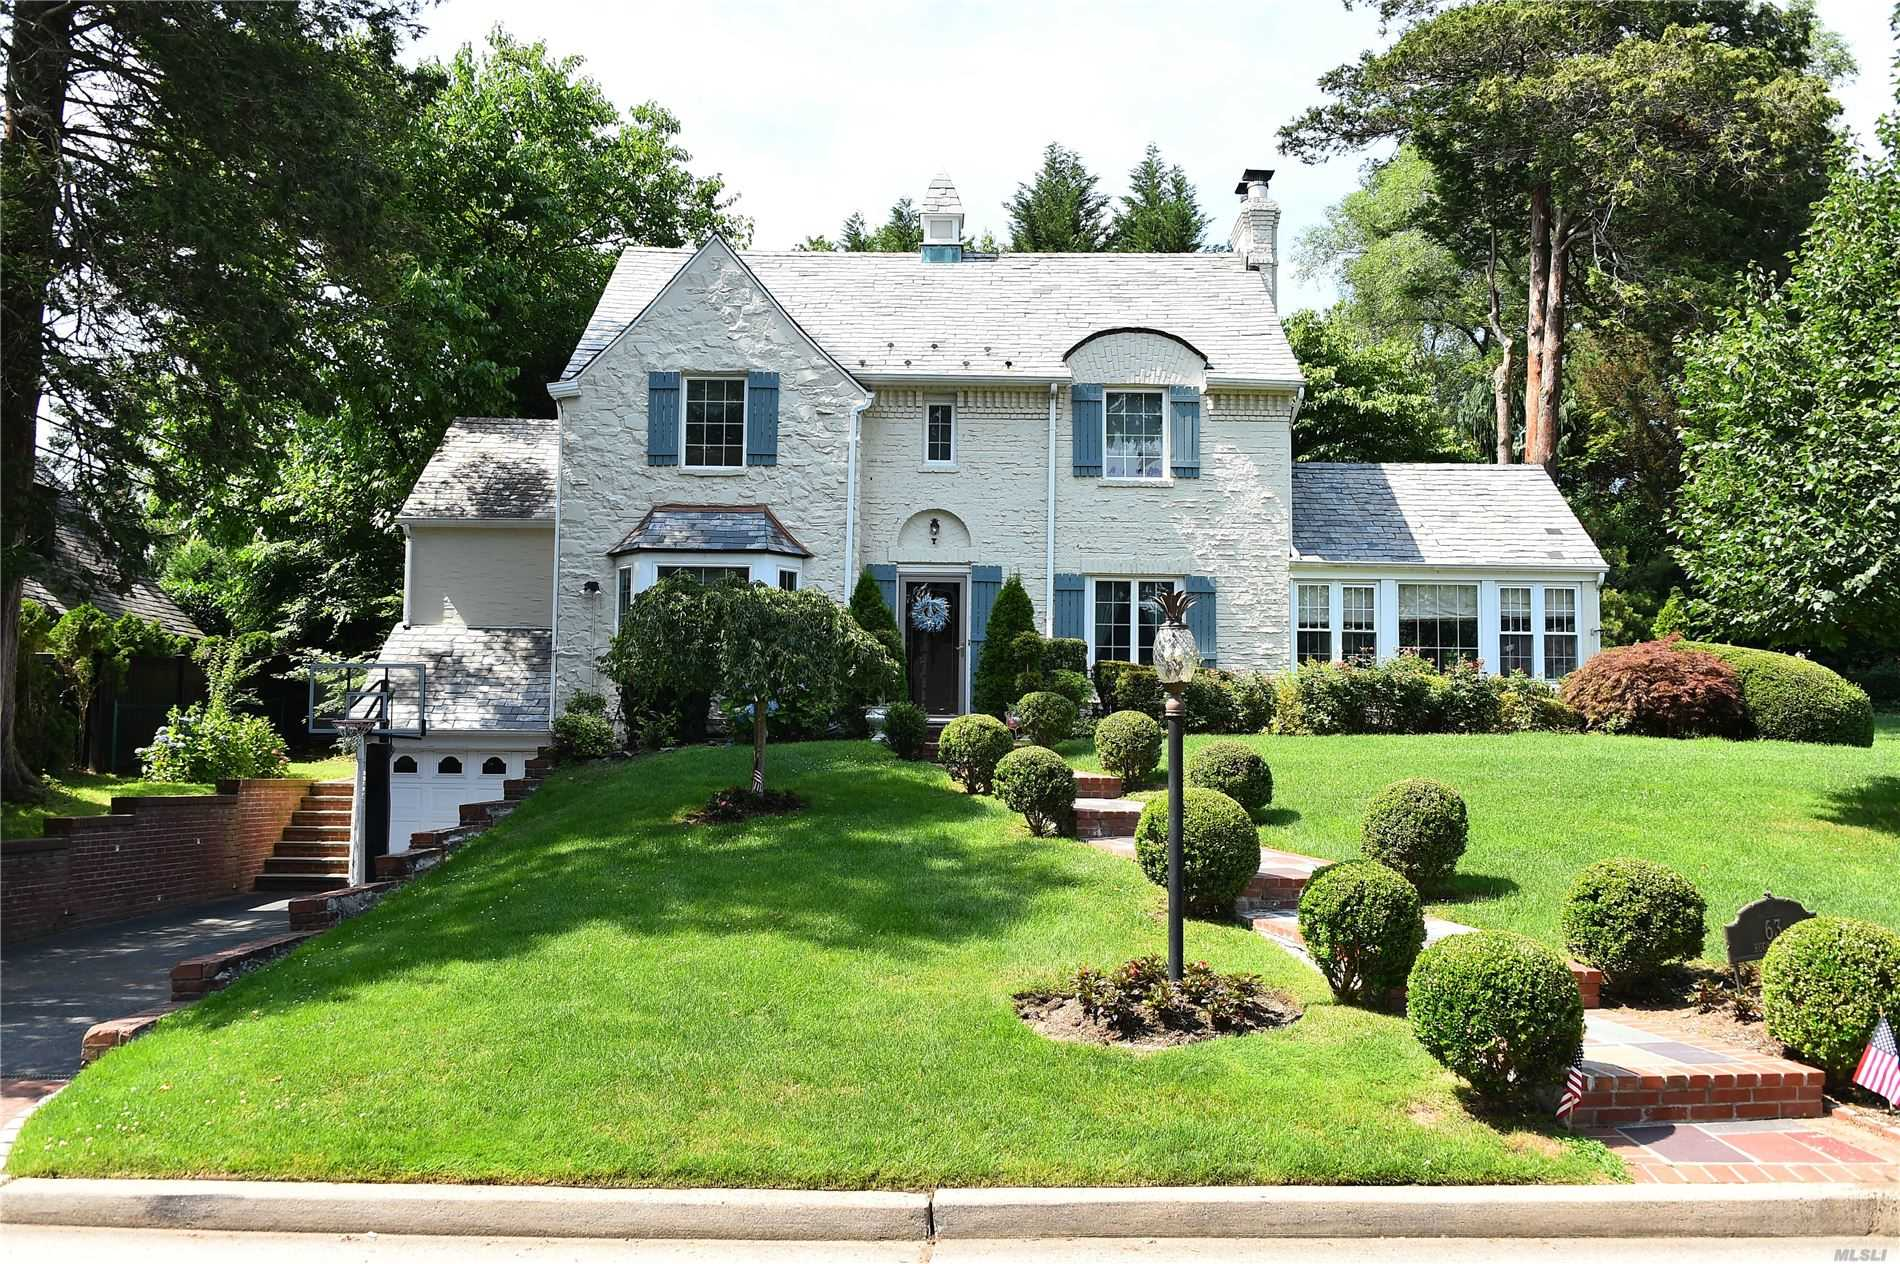 63 Rugby Rd - Manhasset, New York